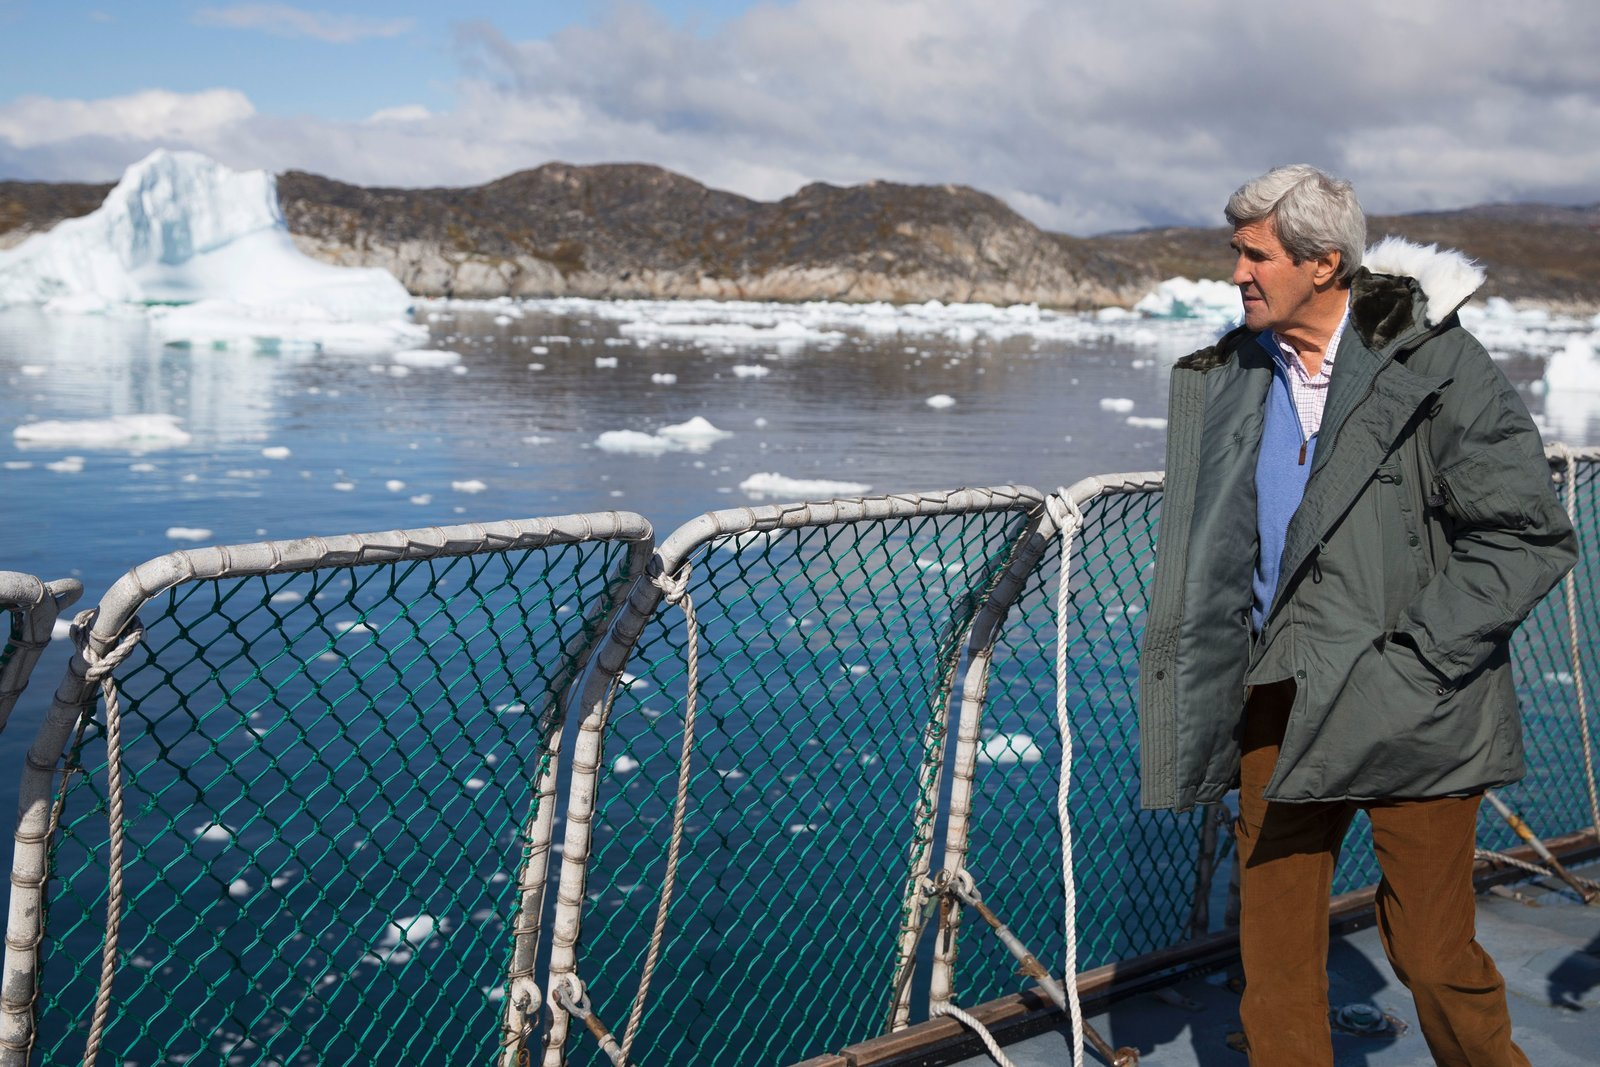 John Kerry visited the Arctic as U.S. secretary of state